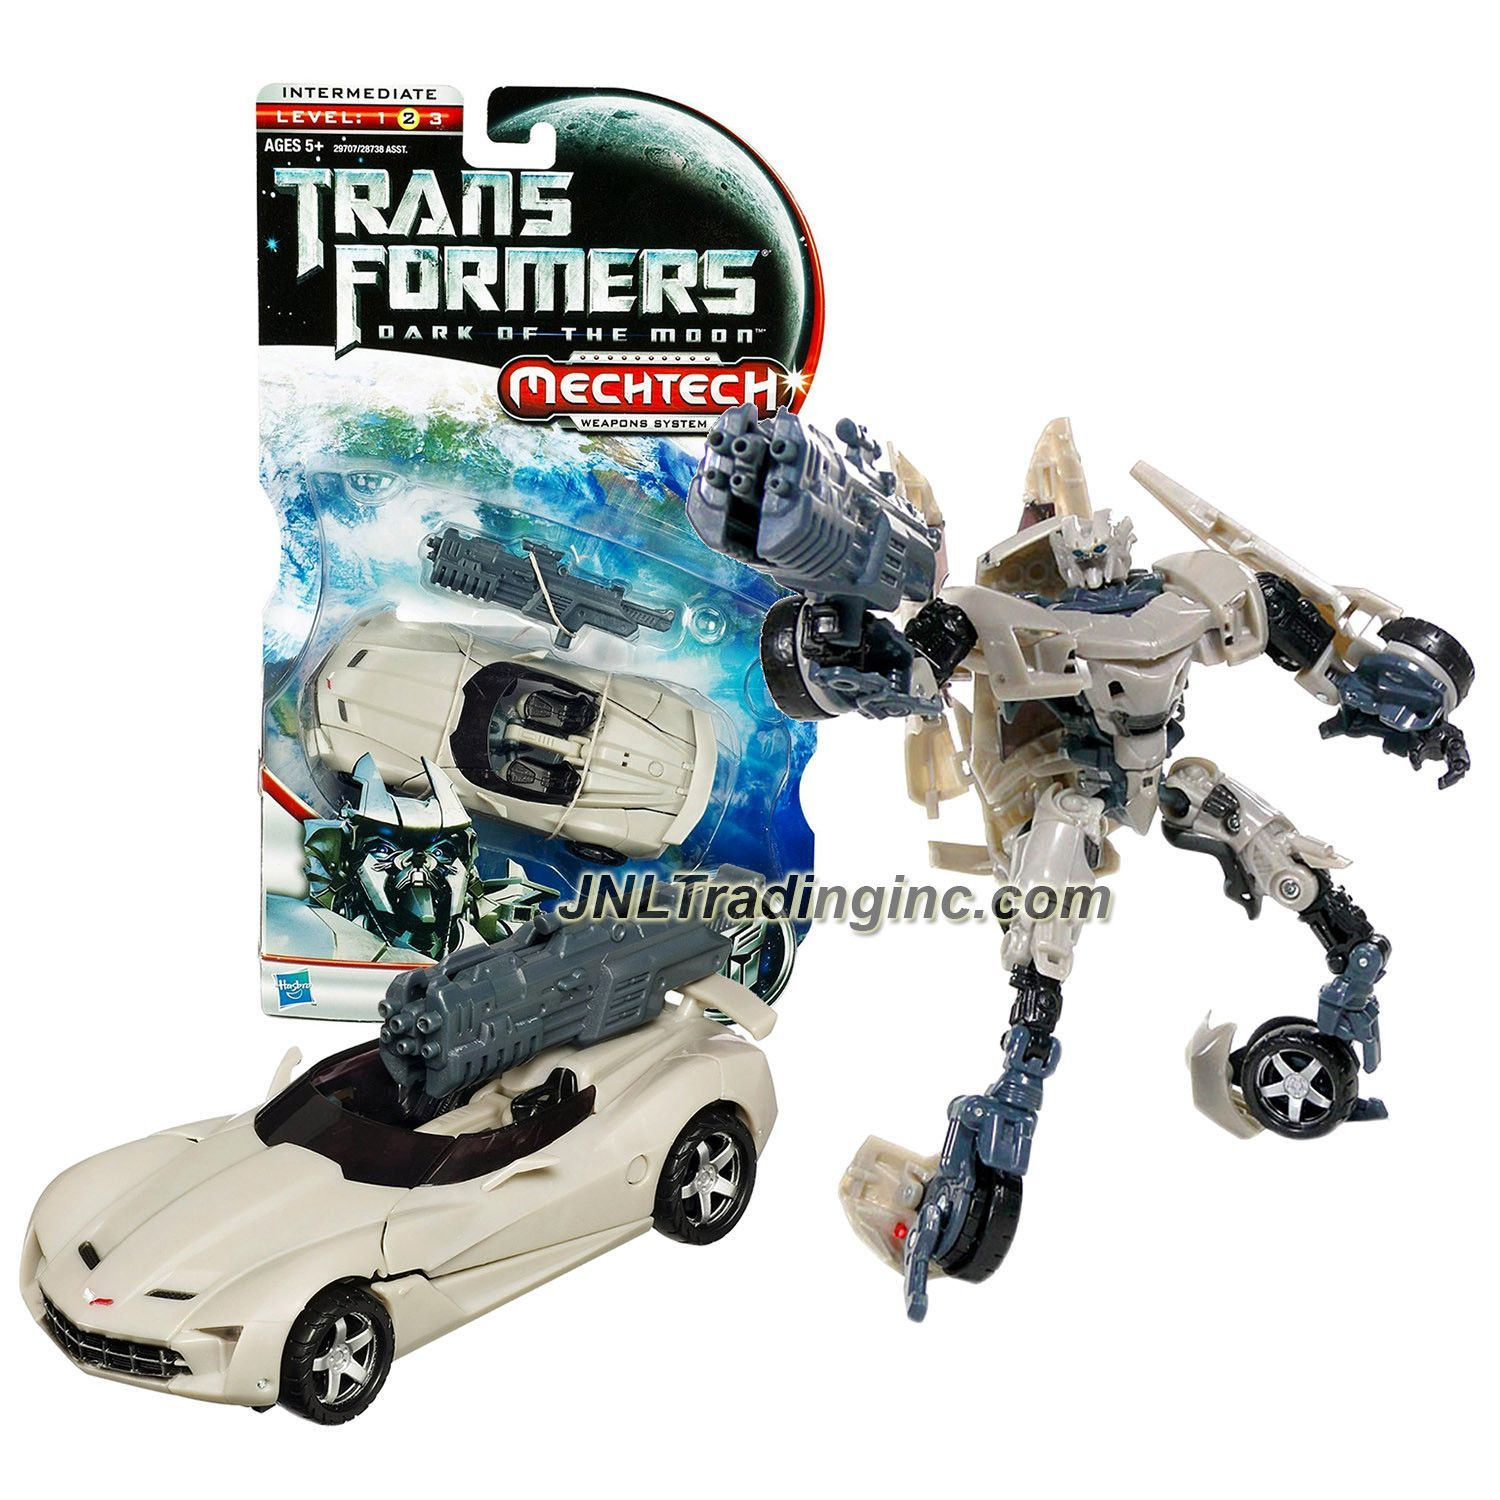 hasbro transformers dark of the moon series deluxe class 6